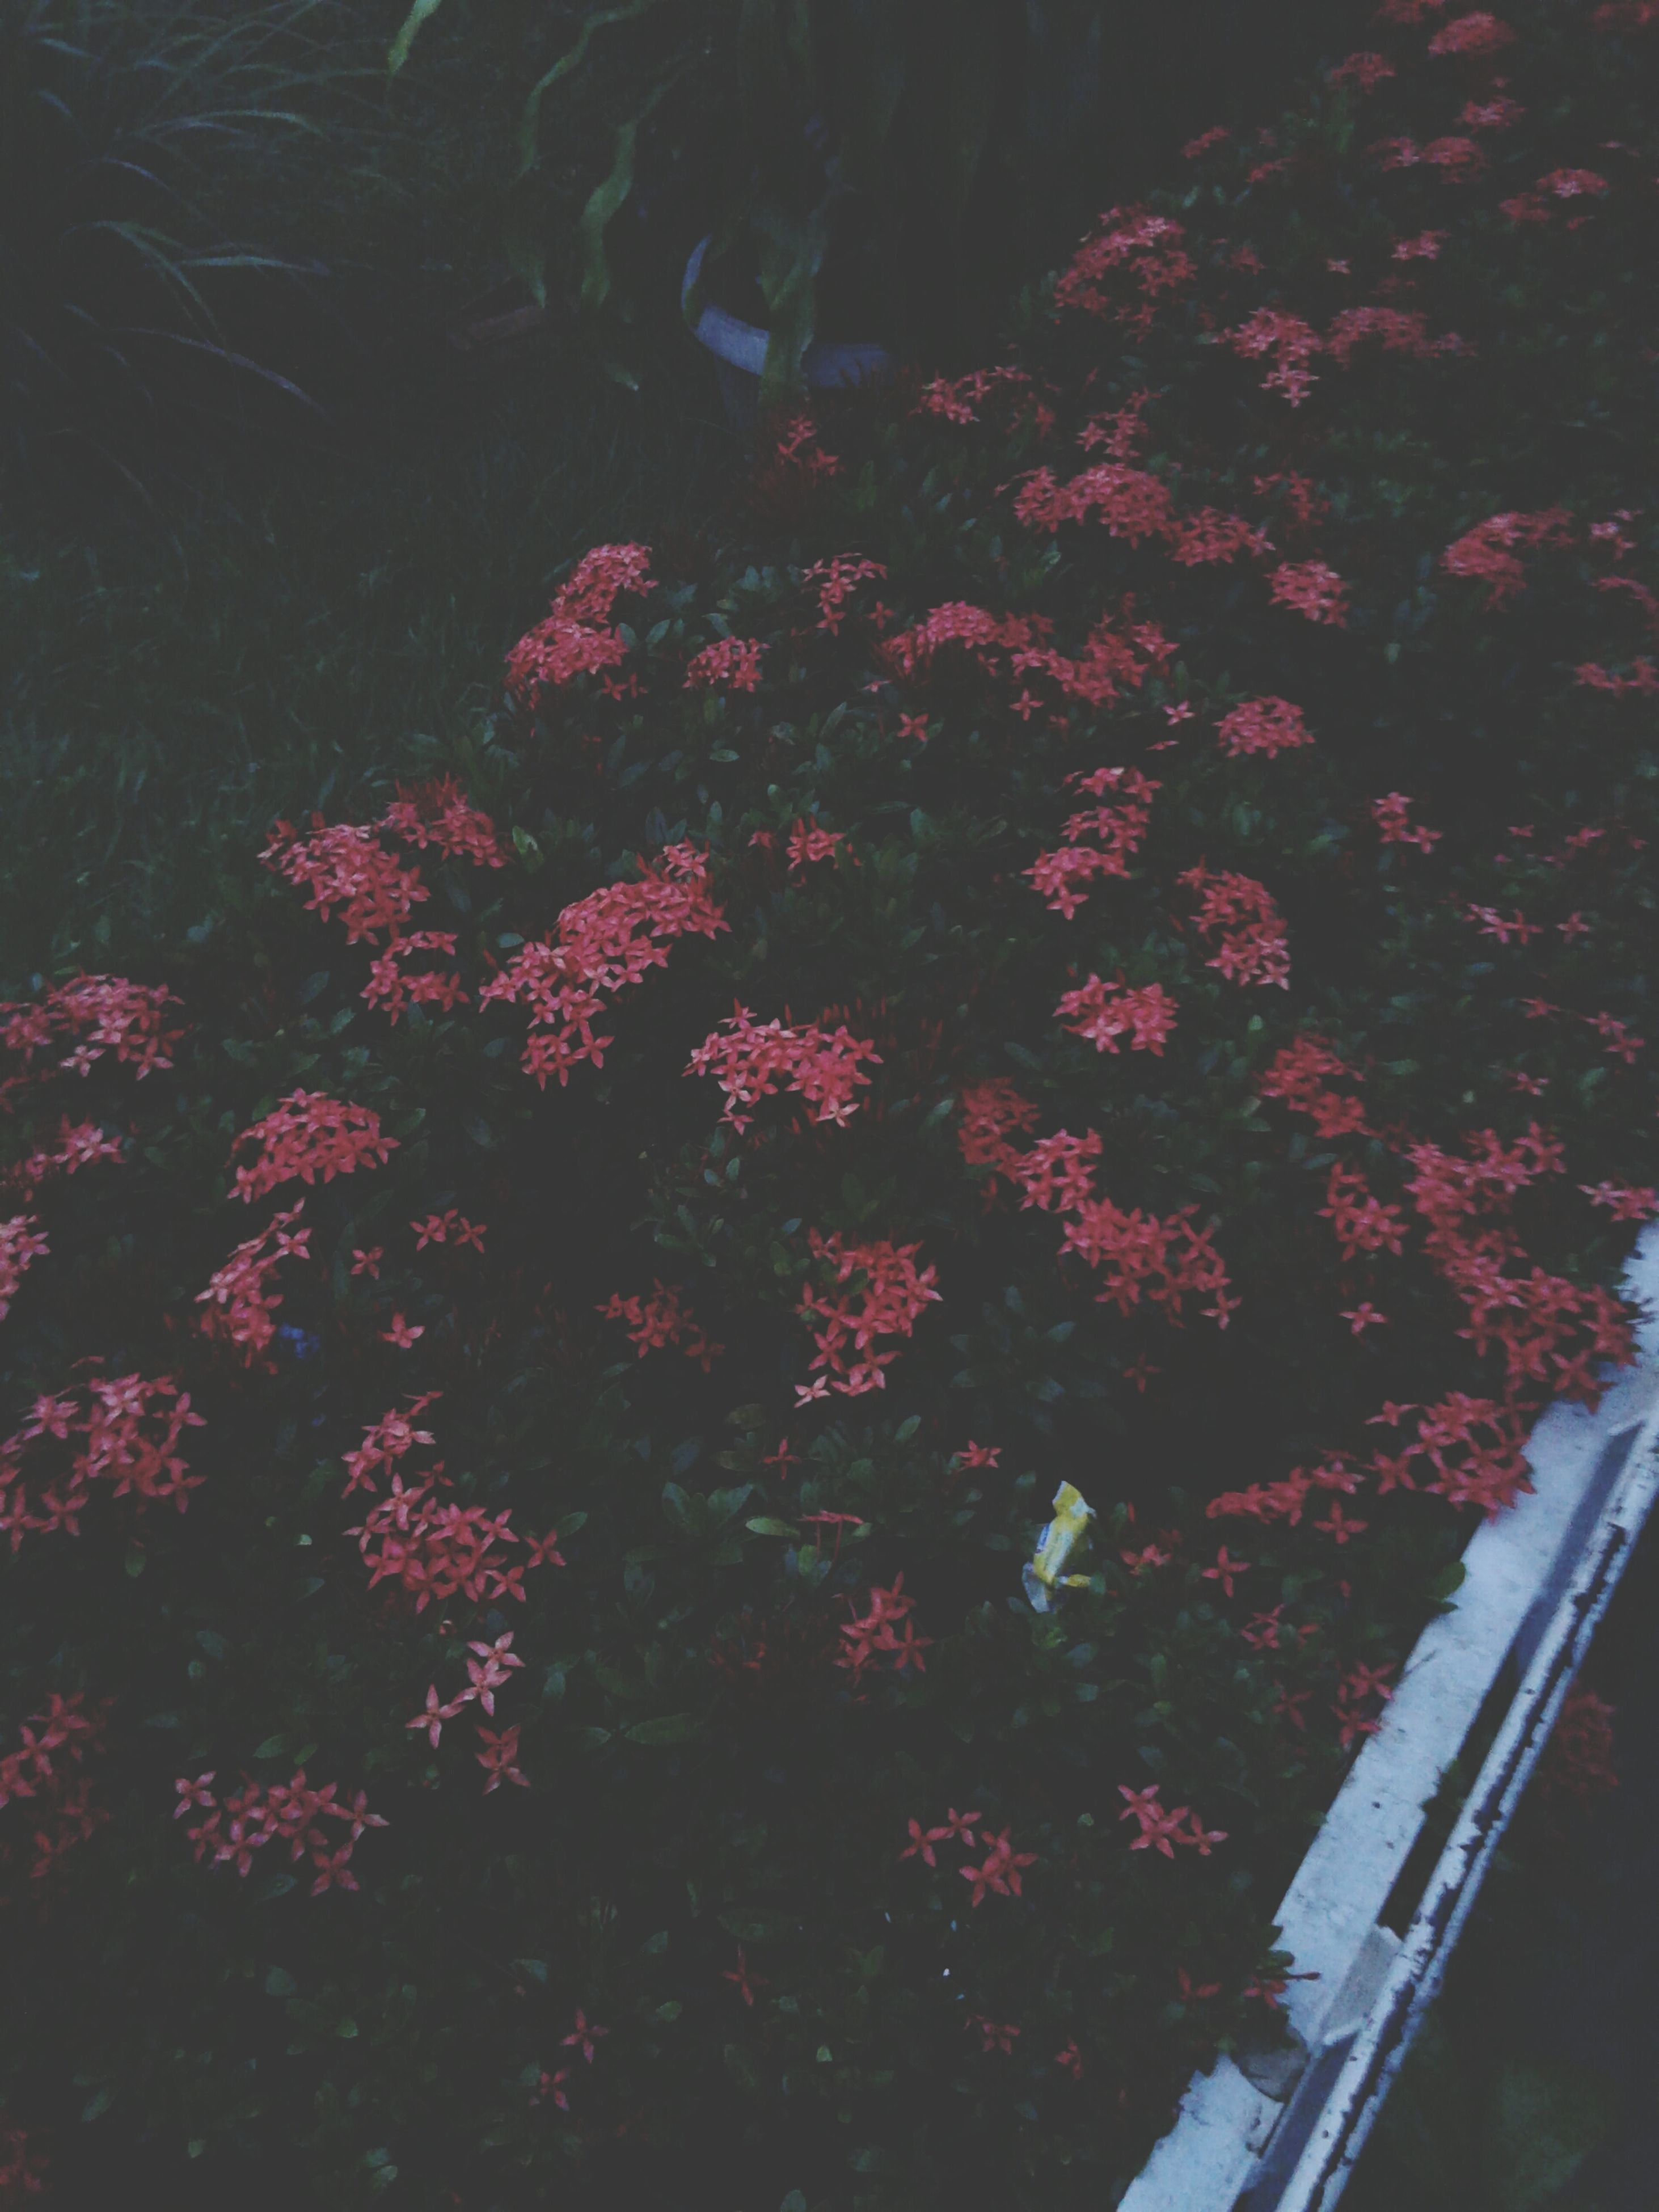 flower, growth, beauty in nature, plant, nature, freshness, high angle view, pink color, fragility, outdoors, tranquility, field, no people, day, sunlight, tree, blooming, park - man made space, leaf, in bloom